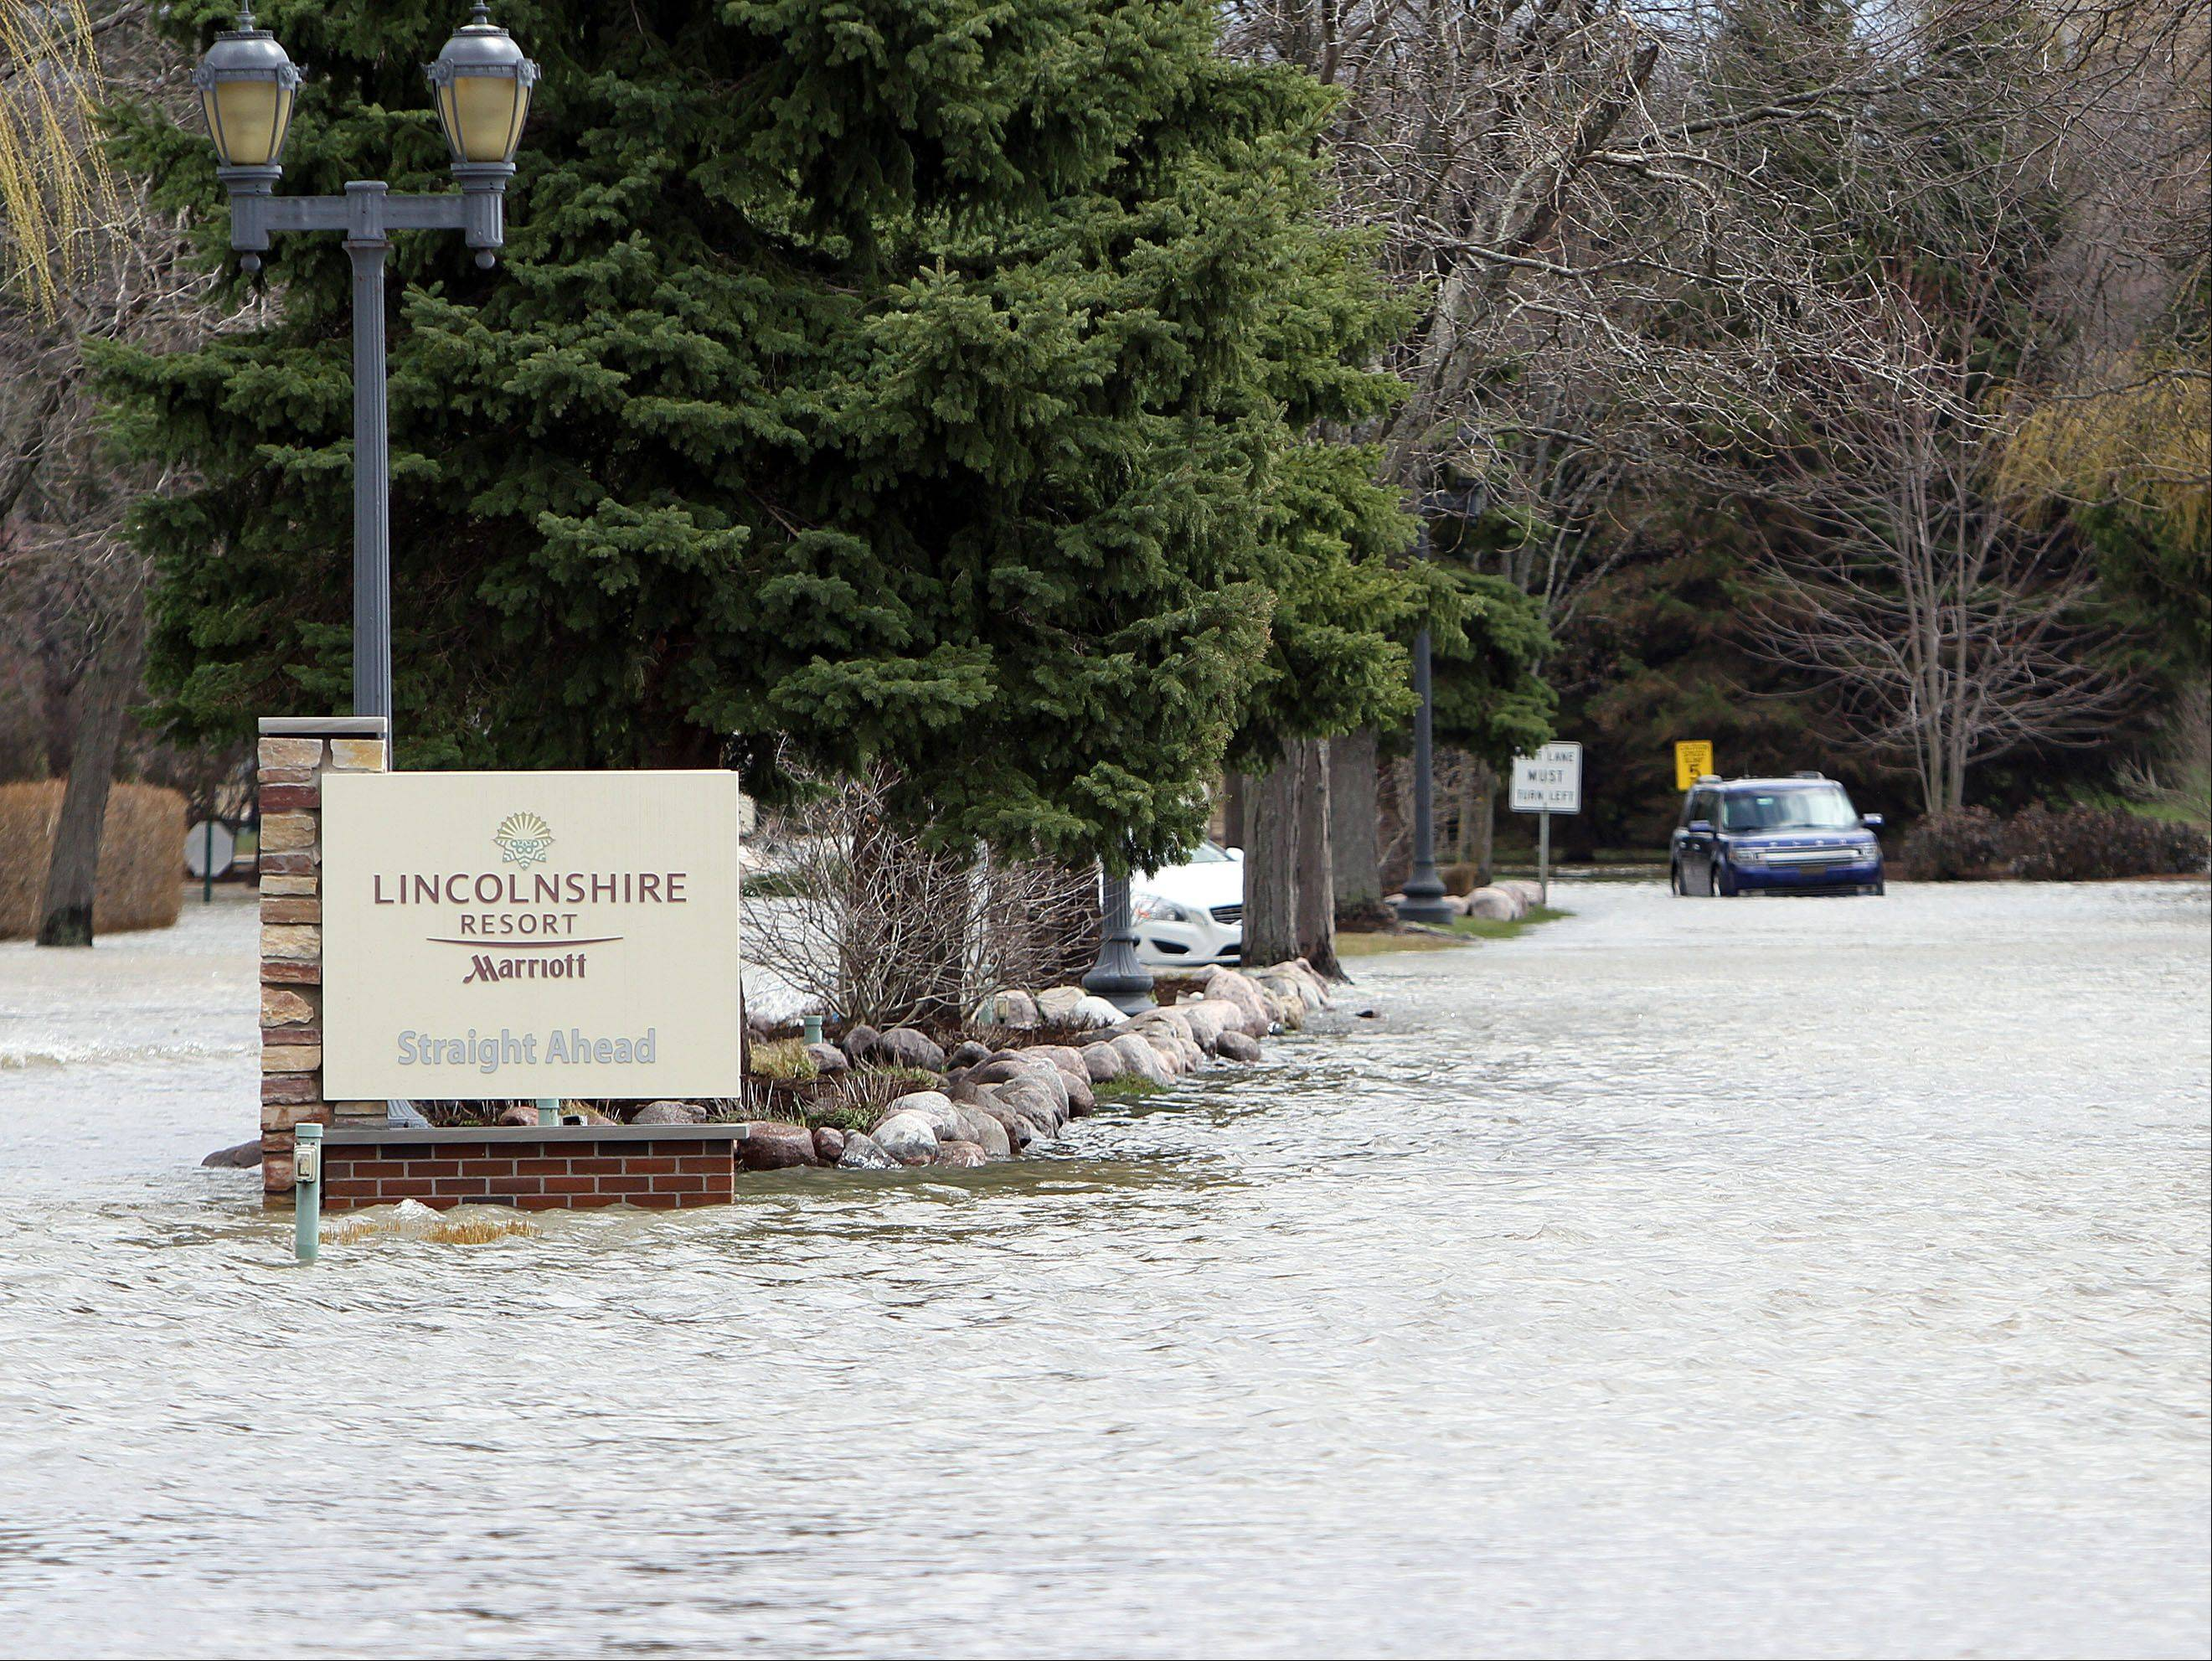 Lincolnshire's Marriott still closed after flooding